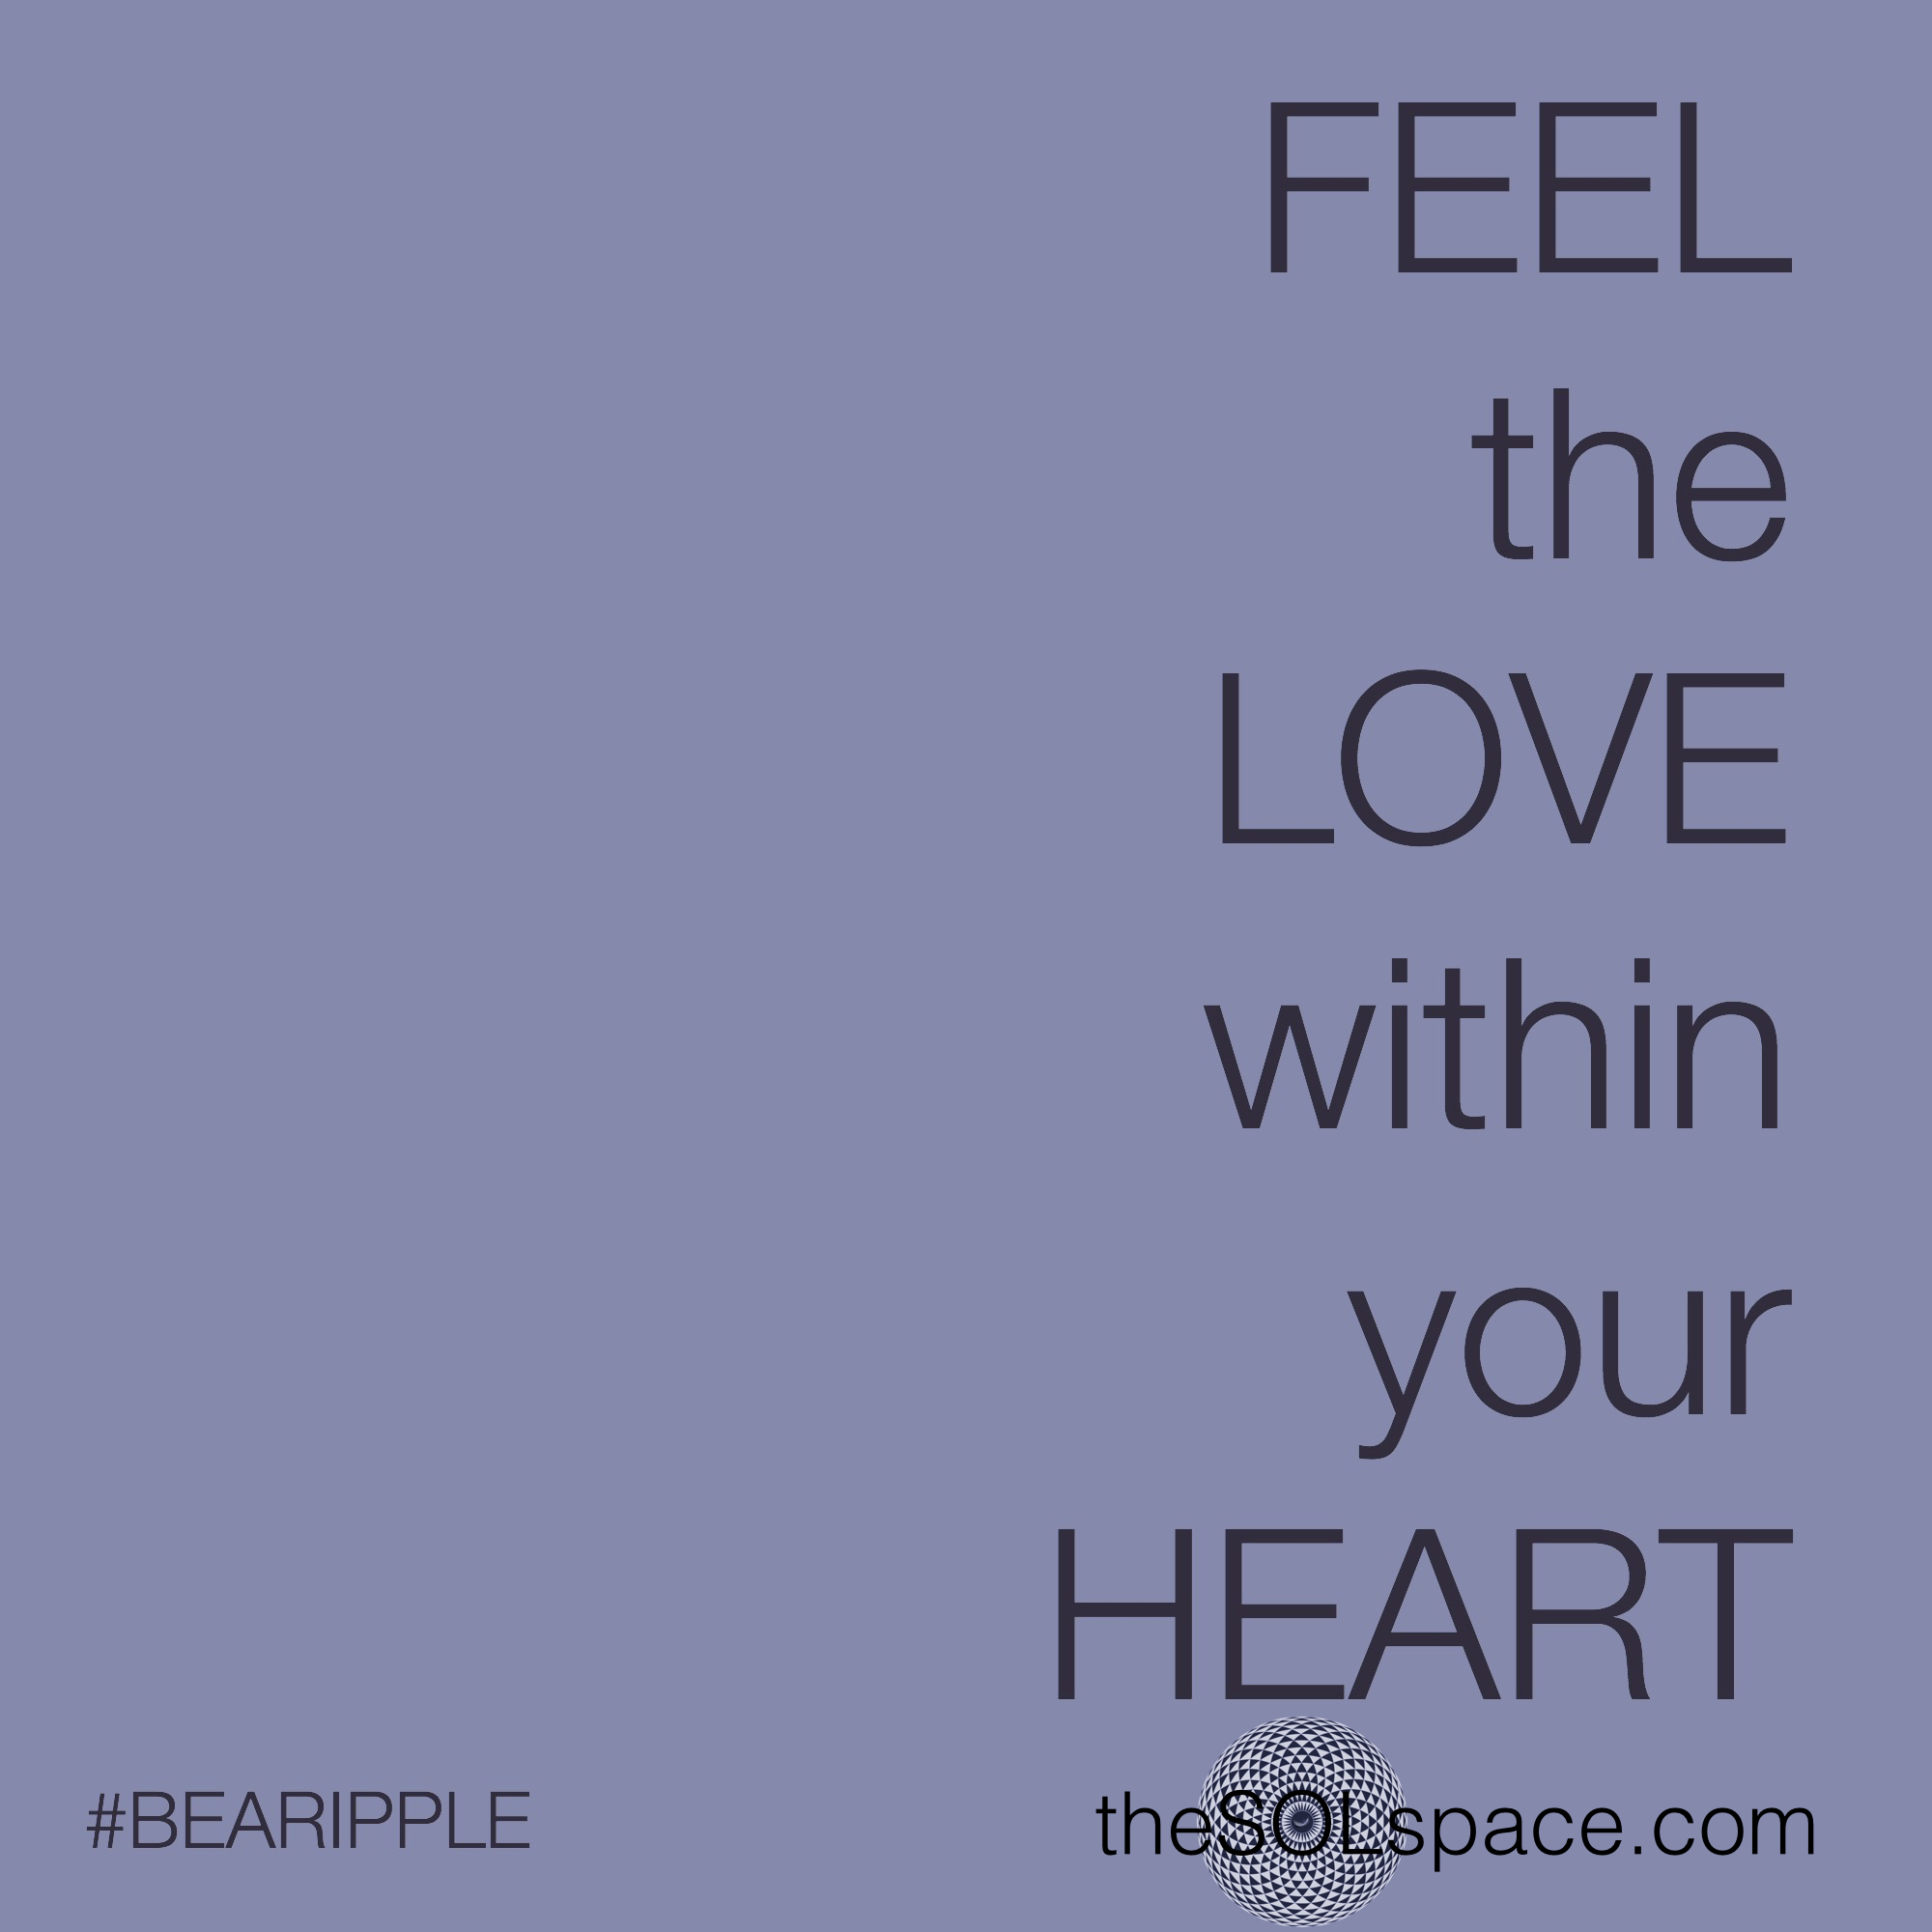 #BeARipple FEEL the LOVE with your HEART @theSOLspace